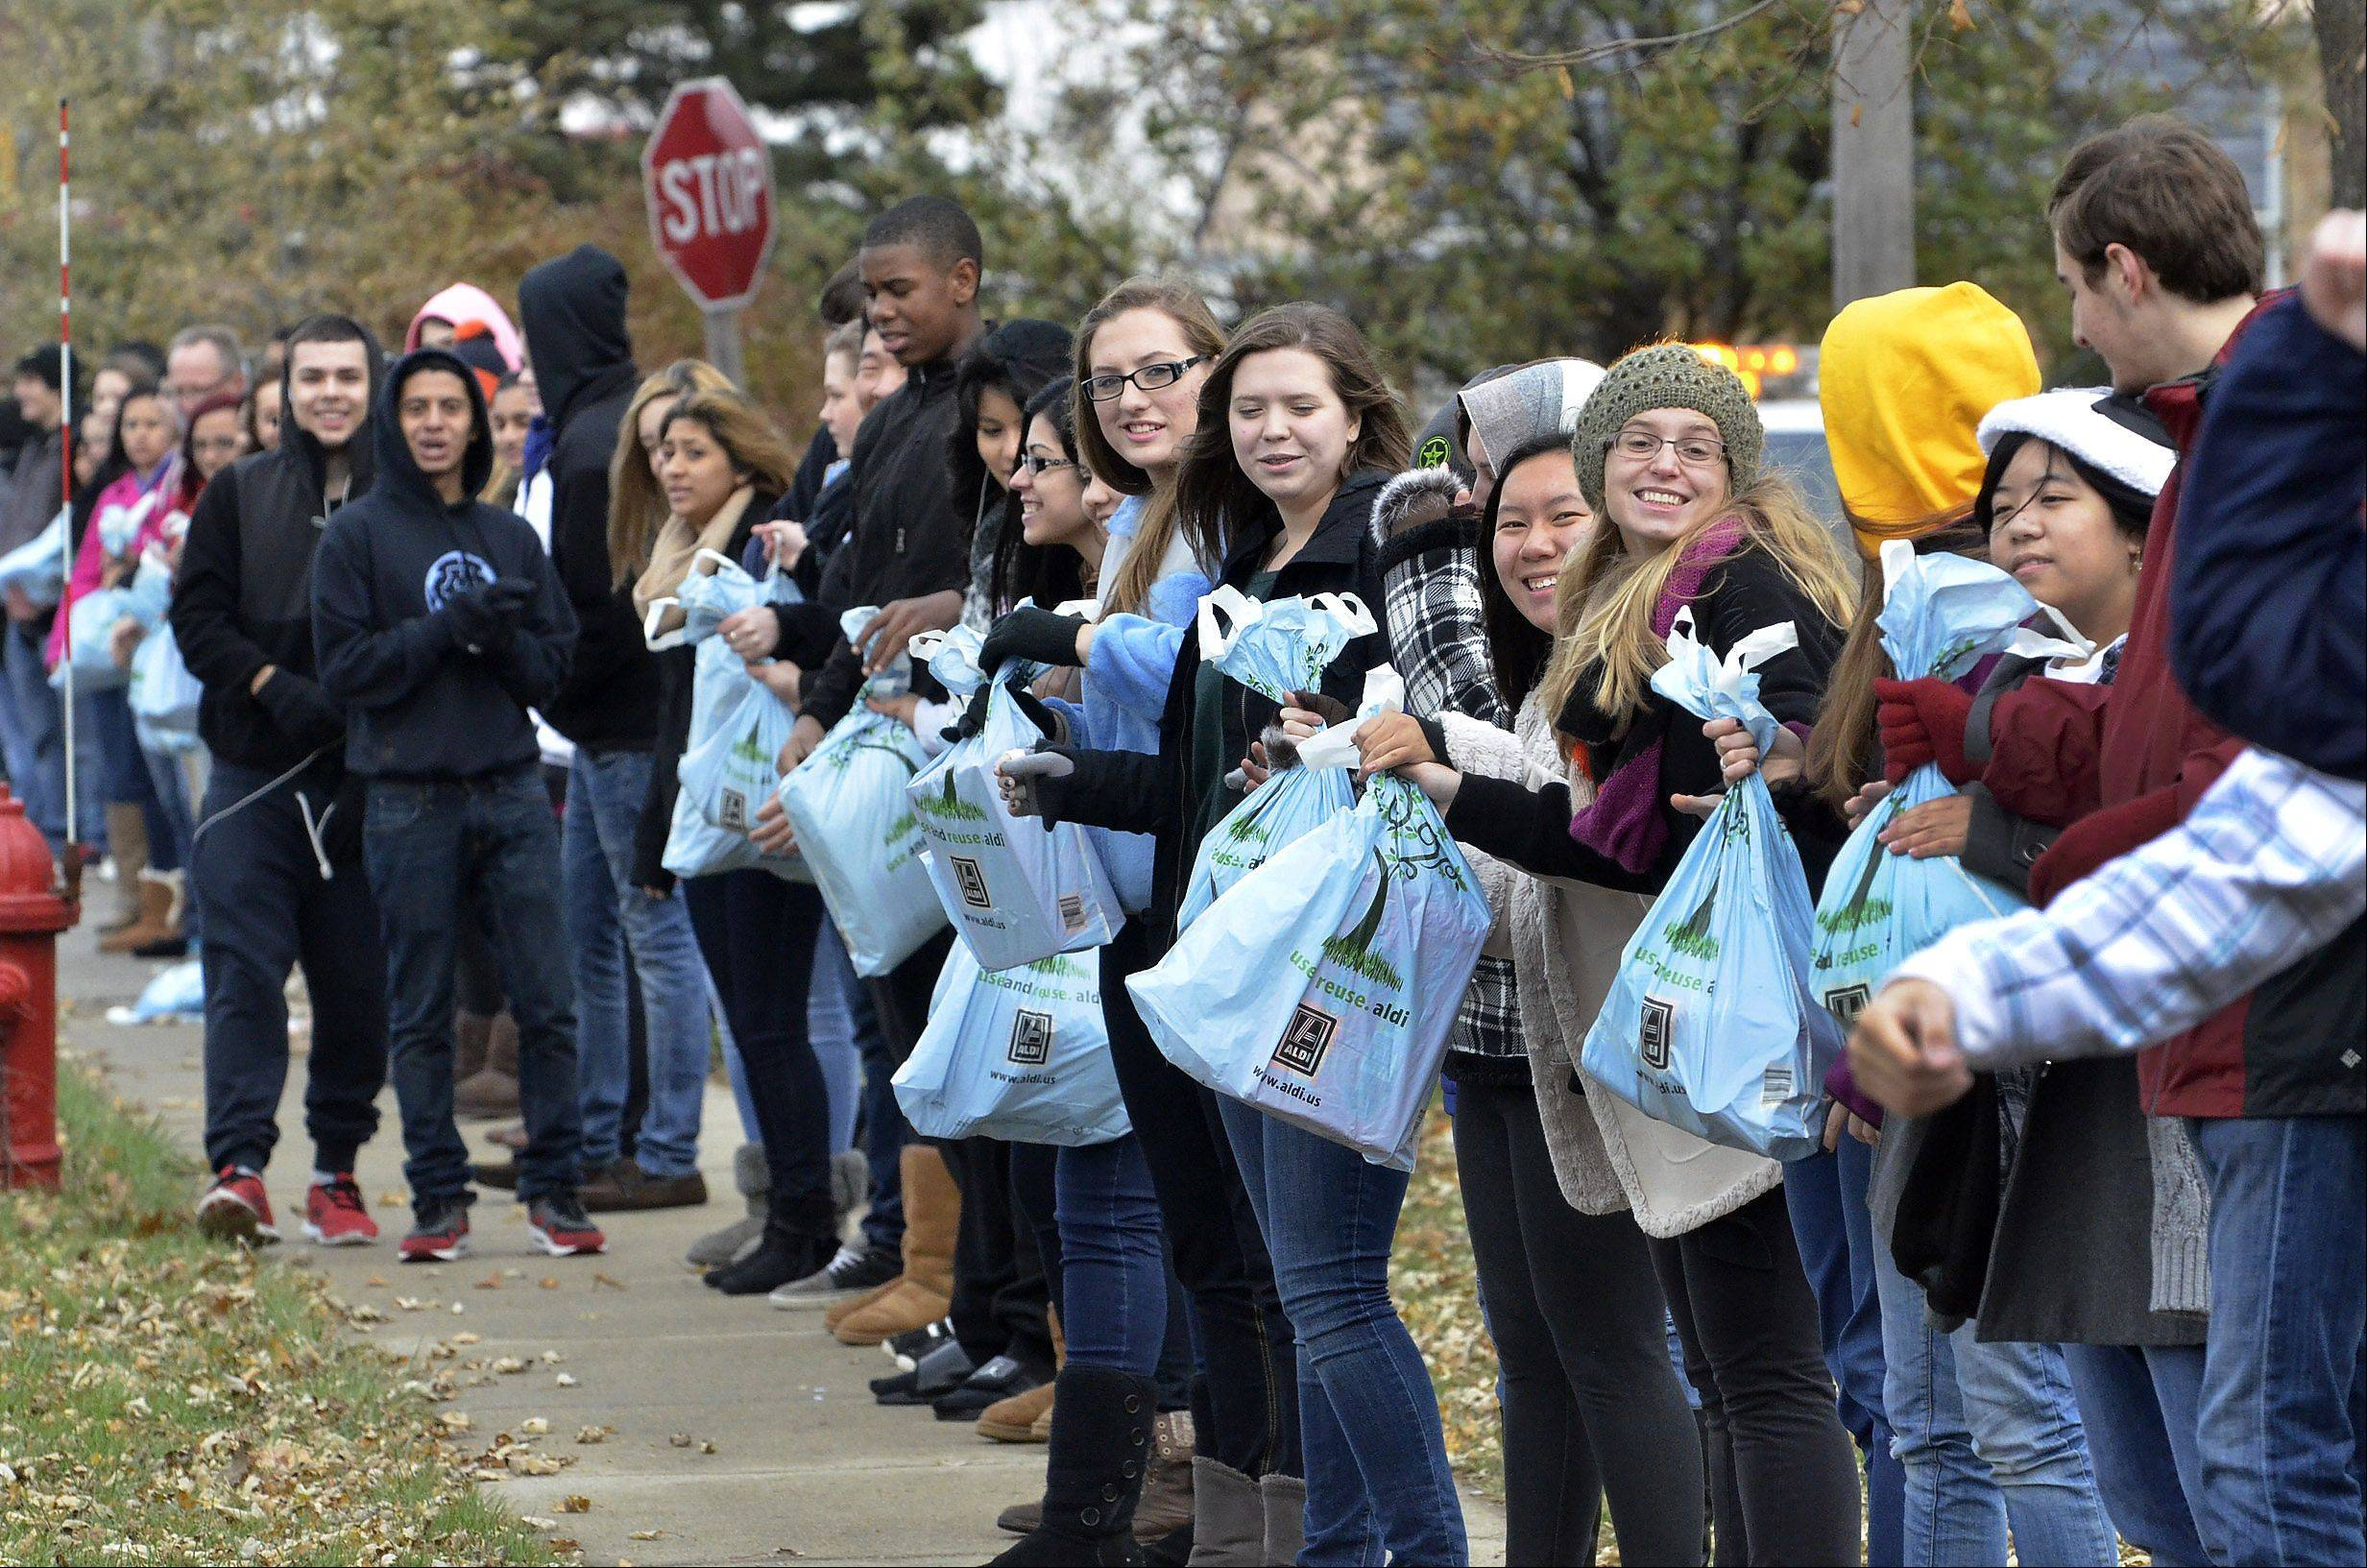 "For the 5th consecutive year, Maine West High School students and staff assembled a half-mile long human chain to help stock a Des Plaines food pantry on Algonquin and Wolf Roads. ""The students collected 7000 cans of food and toilet paper over the past week, and there are over 600 students and staff today participating in our Cans Across Des Plaines event,"" said student council sponsor Samantha Archer."